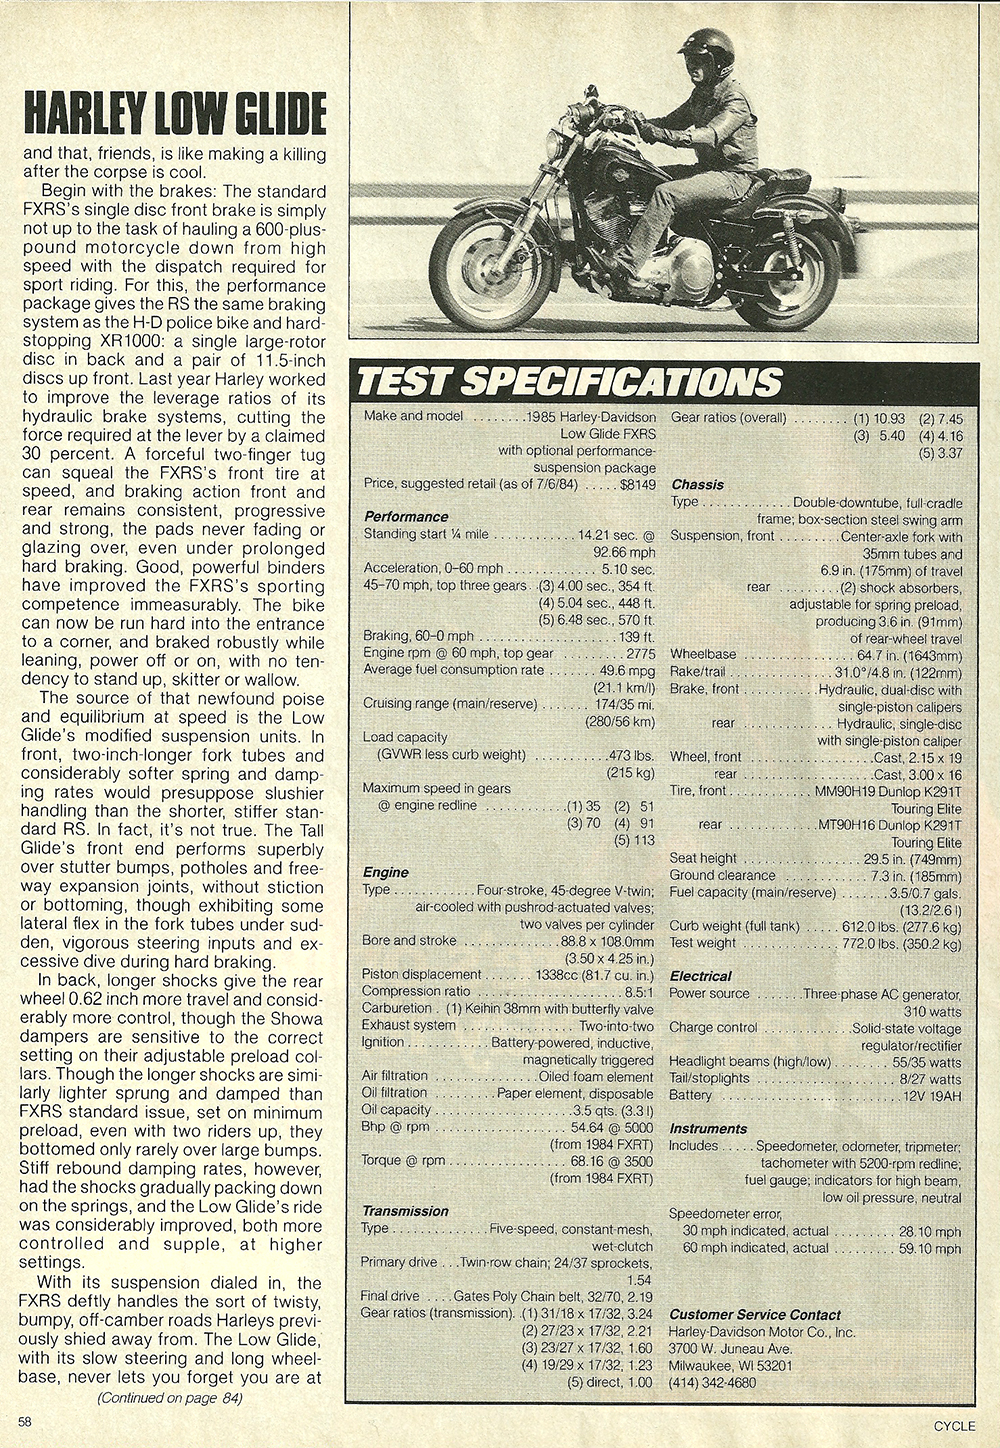 1984 Harley-Davidson Low Glide FXRS road test 8.jpg